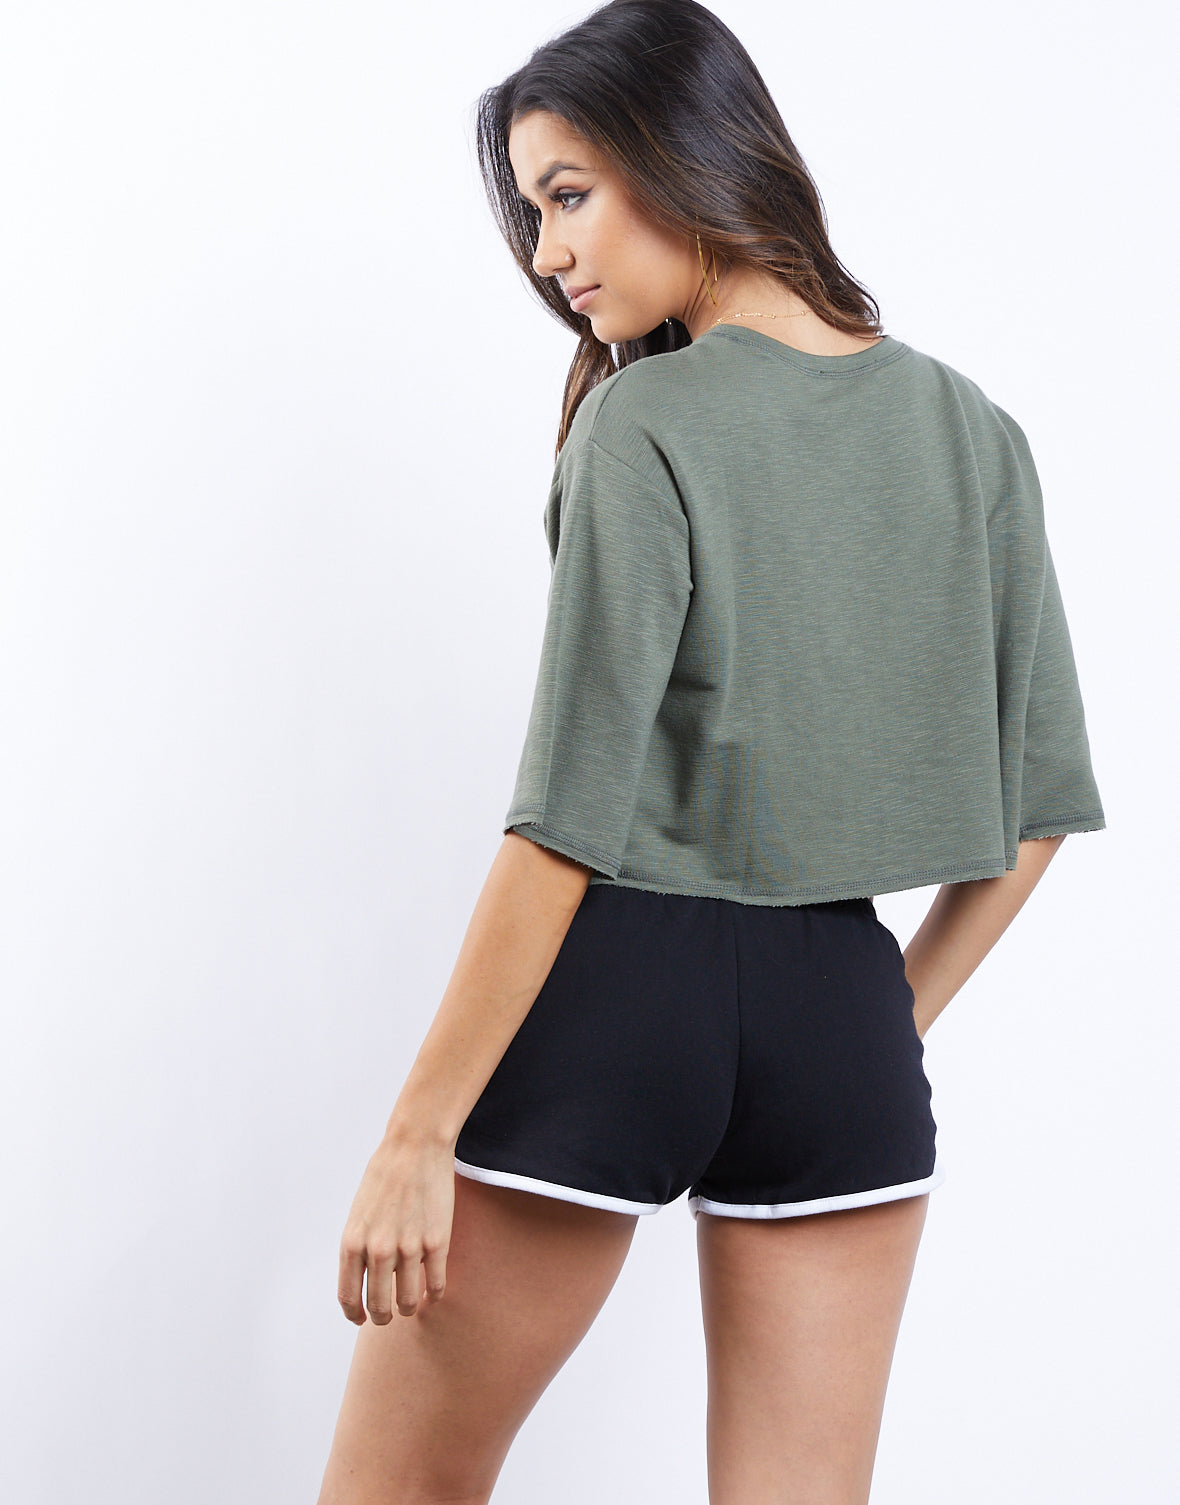 Short Notice Crop Top